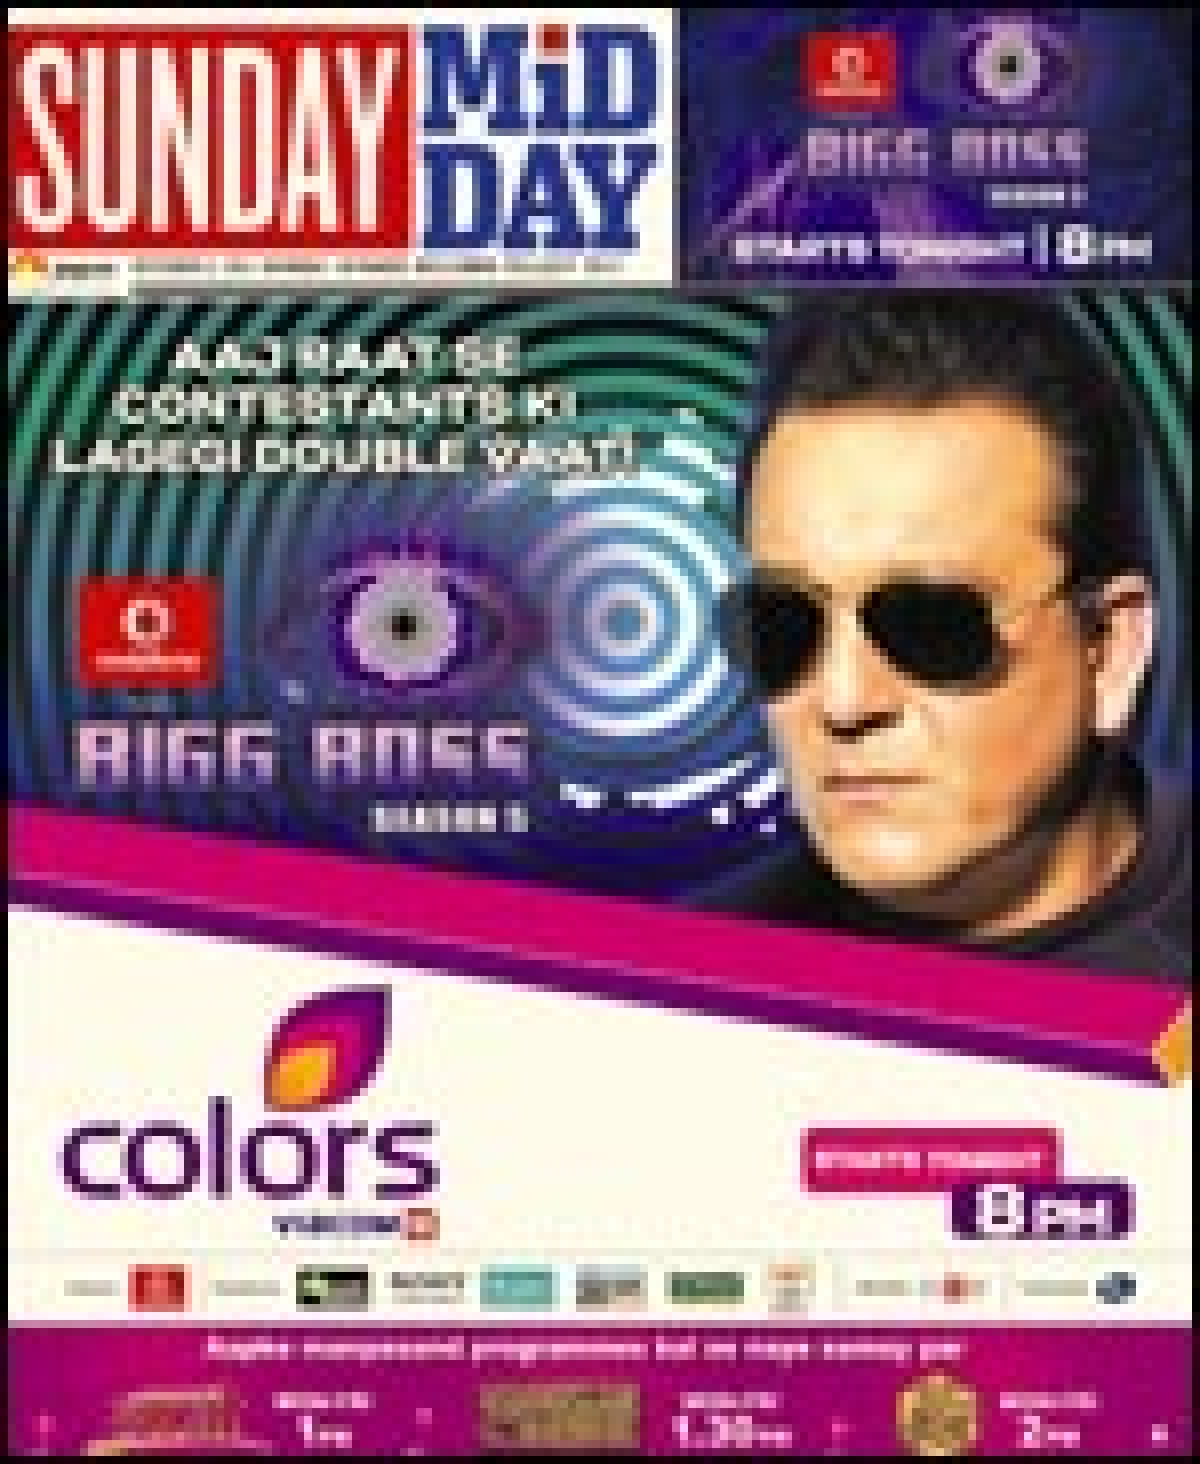 Sunday Mid-Day launches two mastheads for Bigg Boss 5